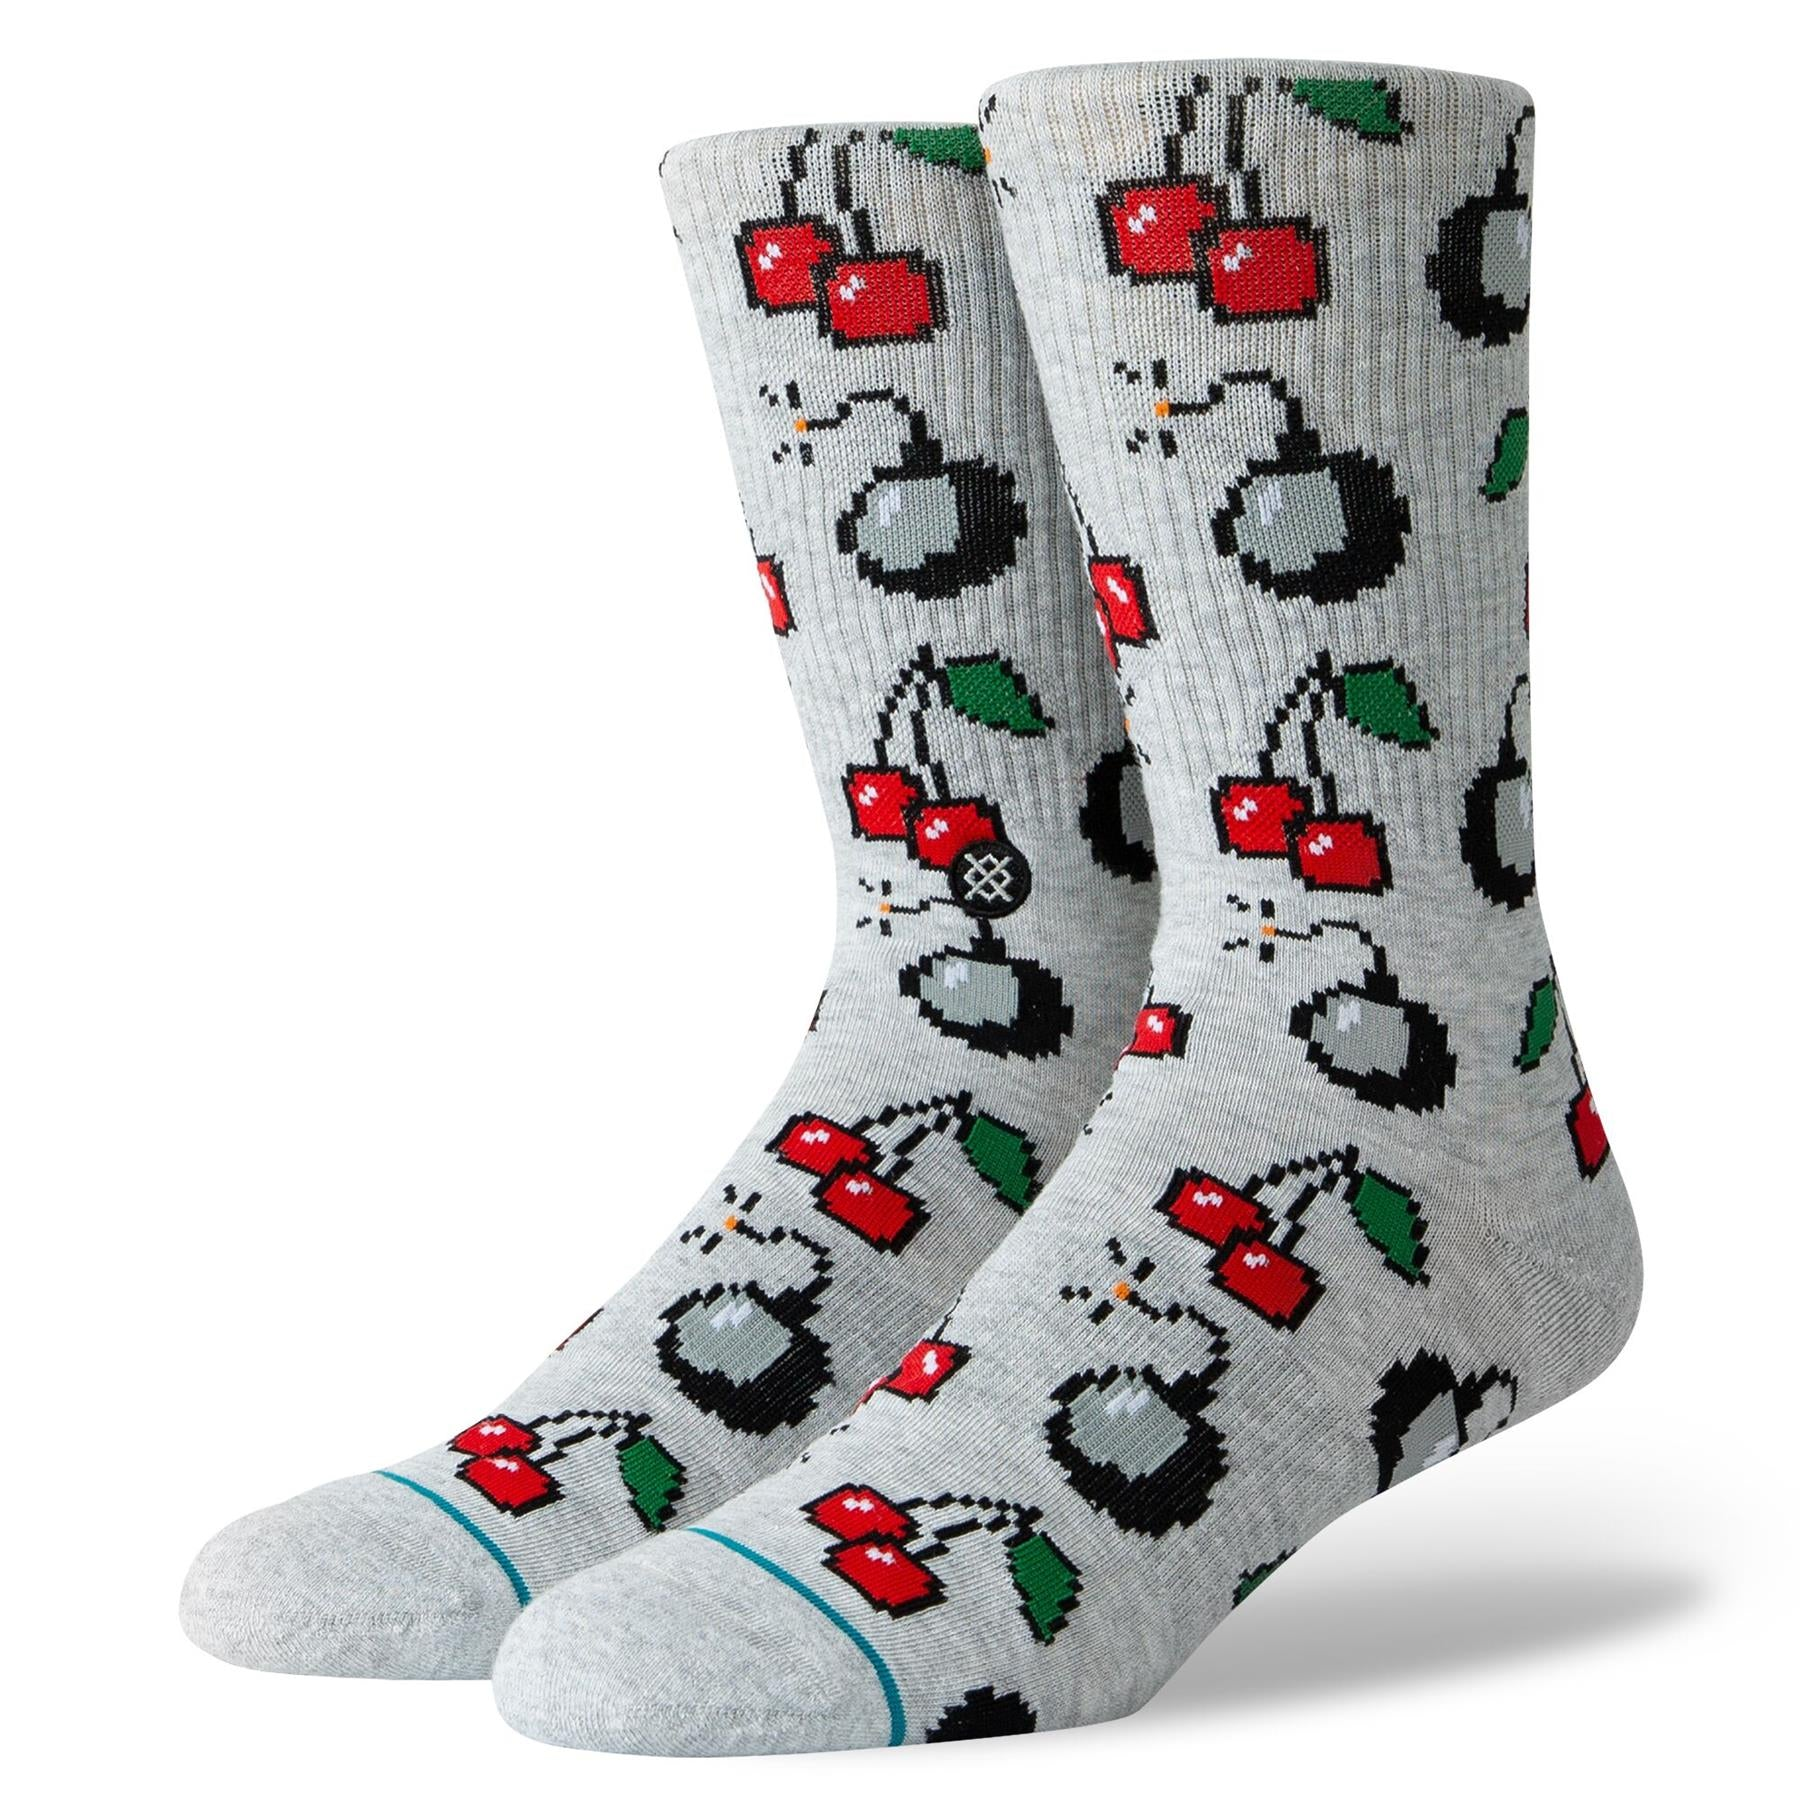 Stance Cherri Bomb Socks - Heather Grey/ Large